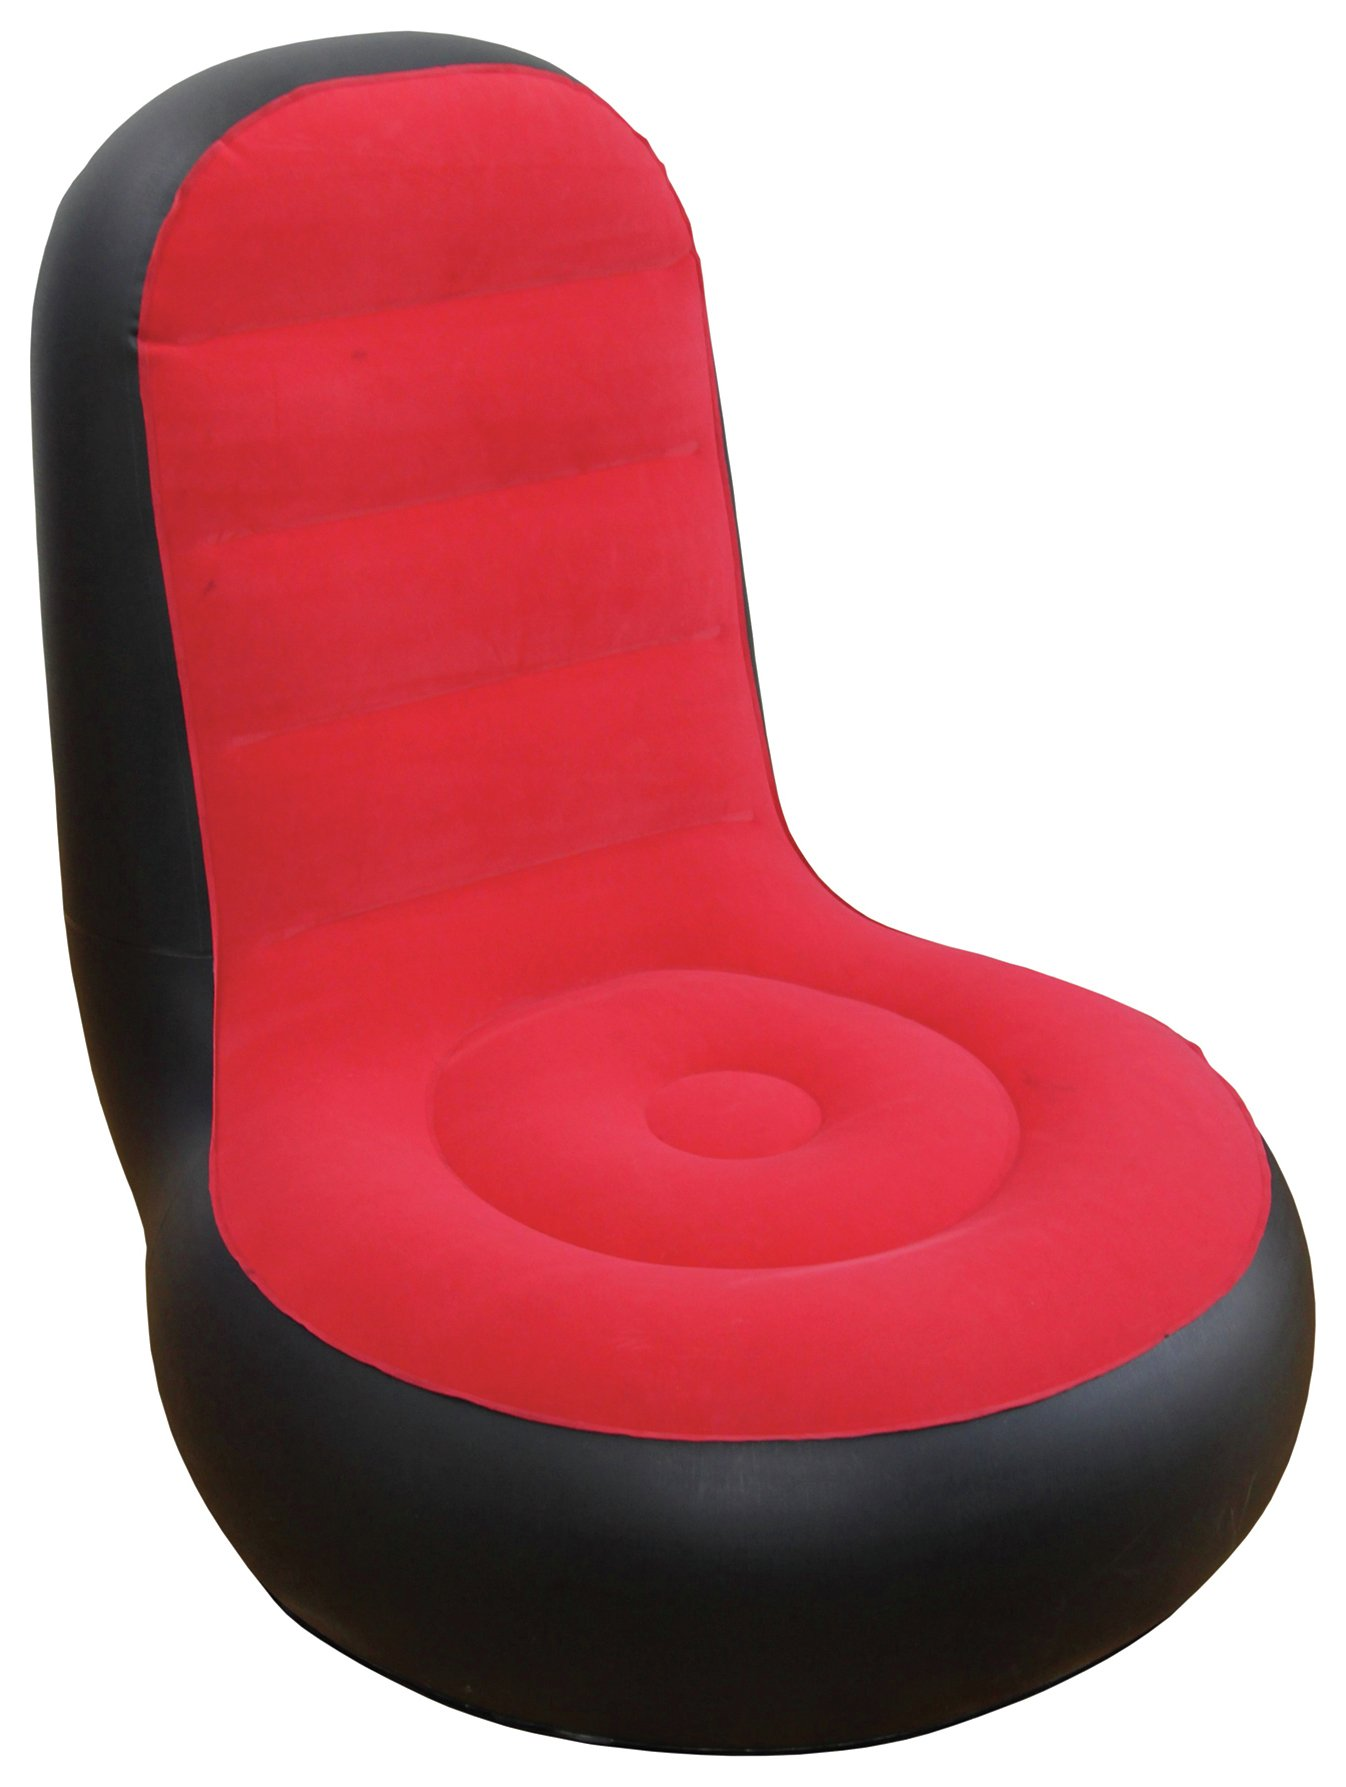 easy-inflatable-chair